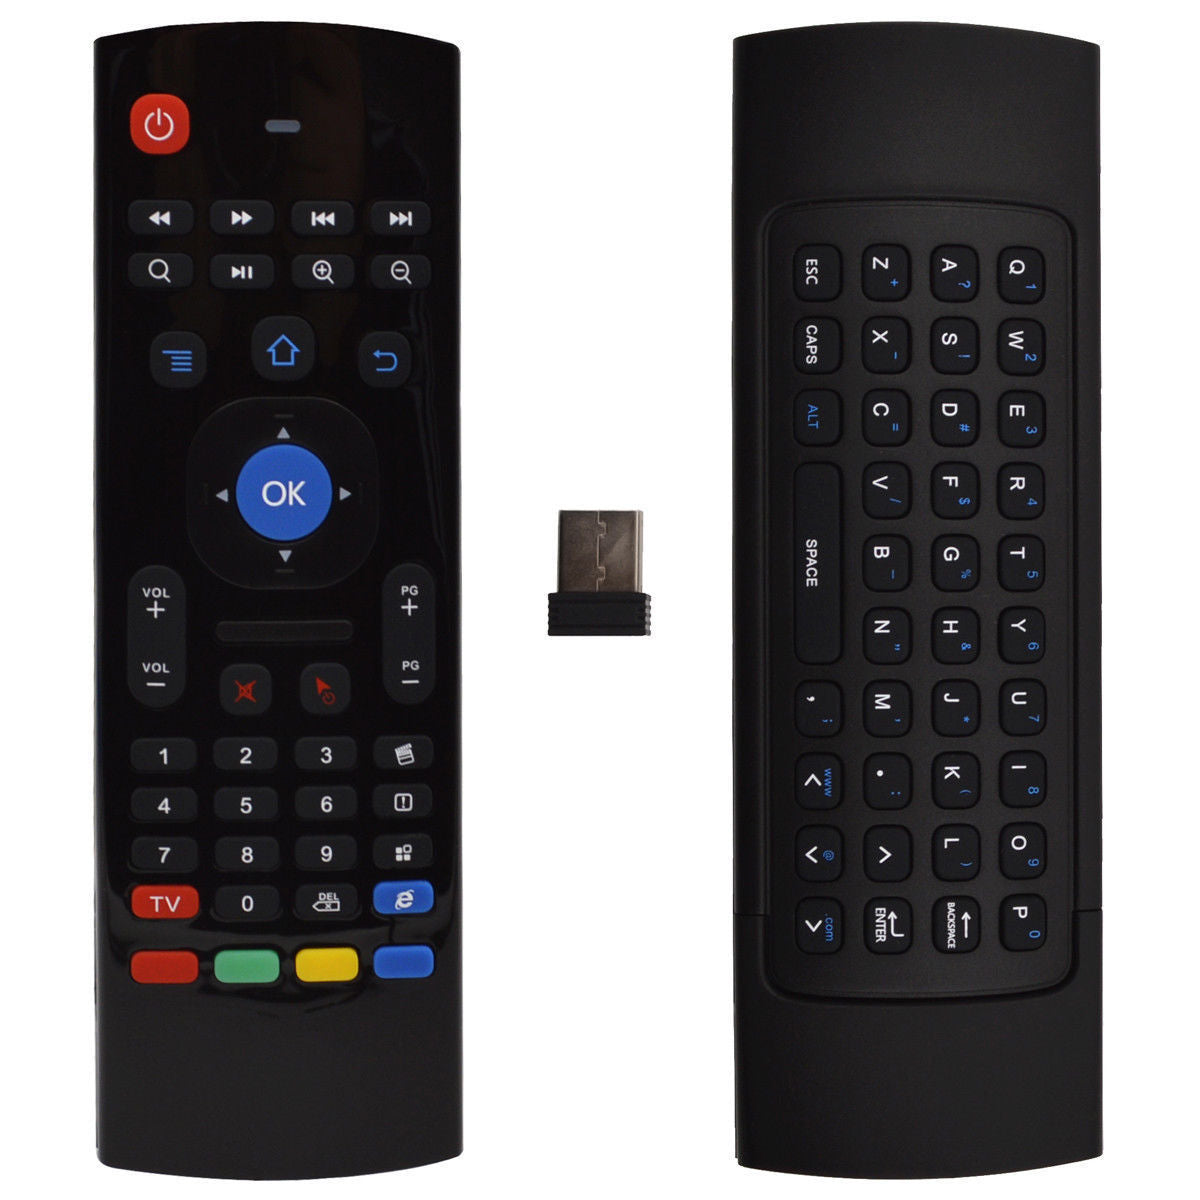 MX3 Air Mouse Wireless Keyboard Remote for Android TV Box, Nvidia Shield, PC, Smart TV